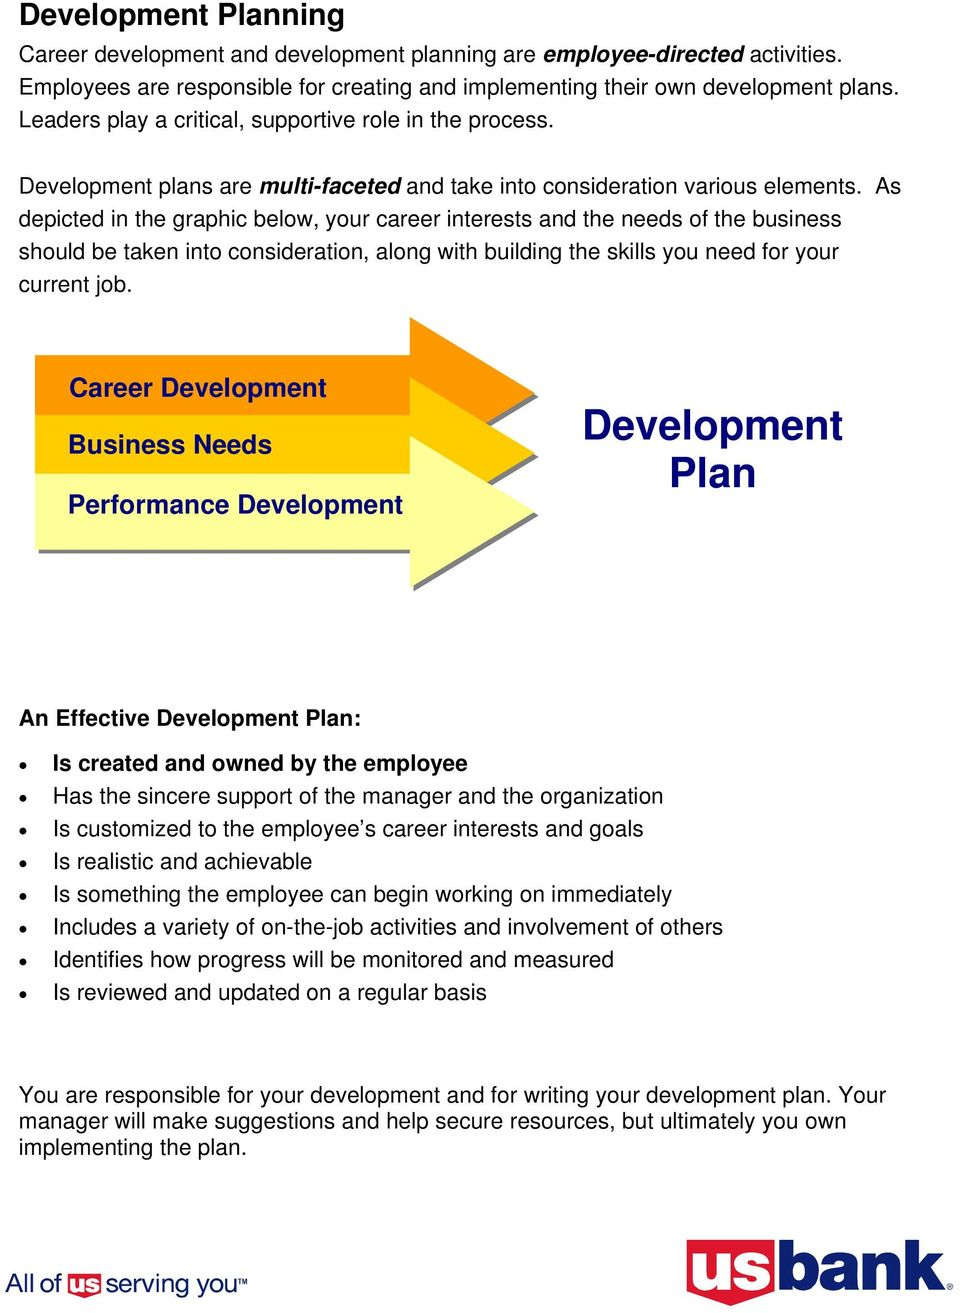 Writing a Development Plan A GUIDE FOR EMPLOYEES - PDF